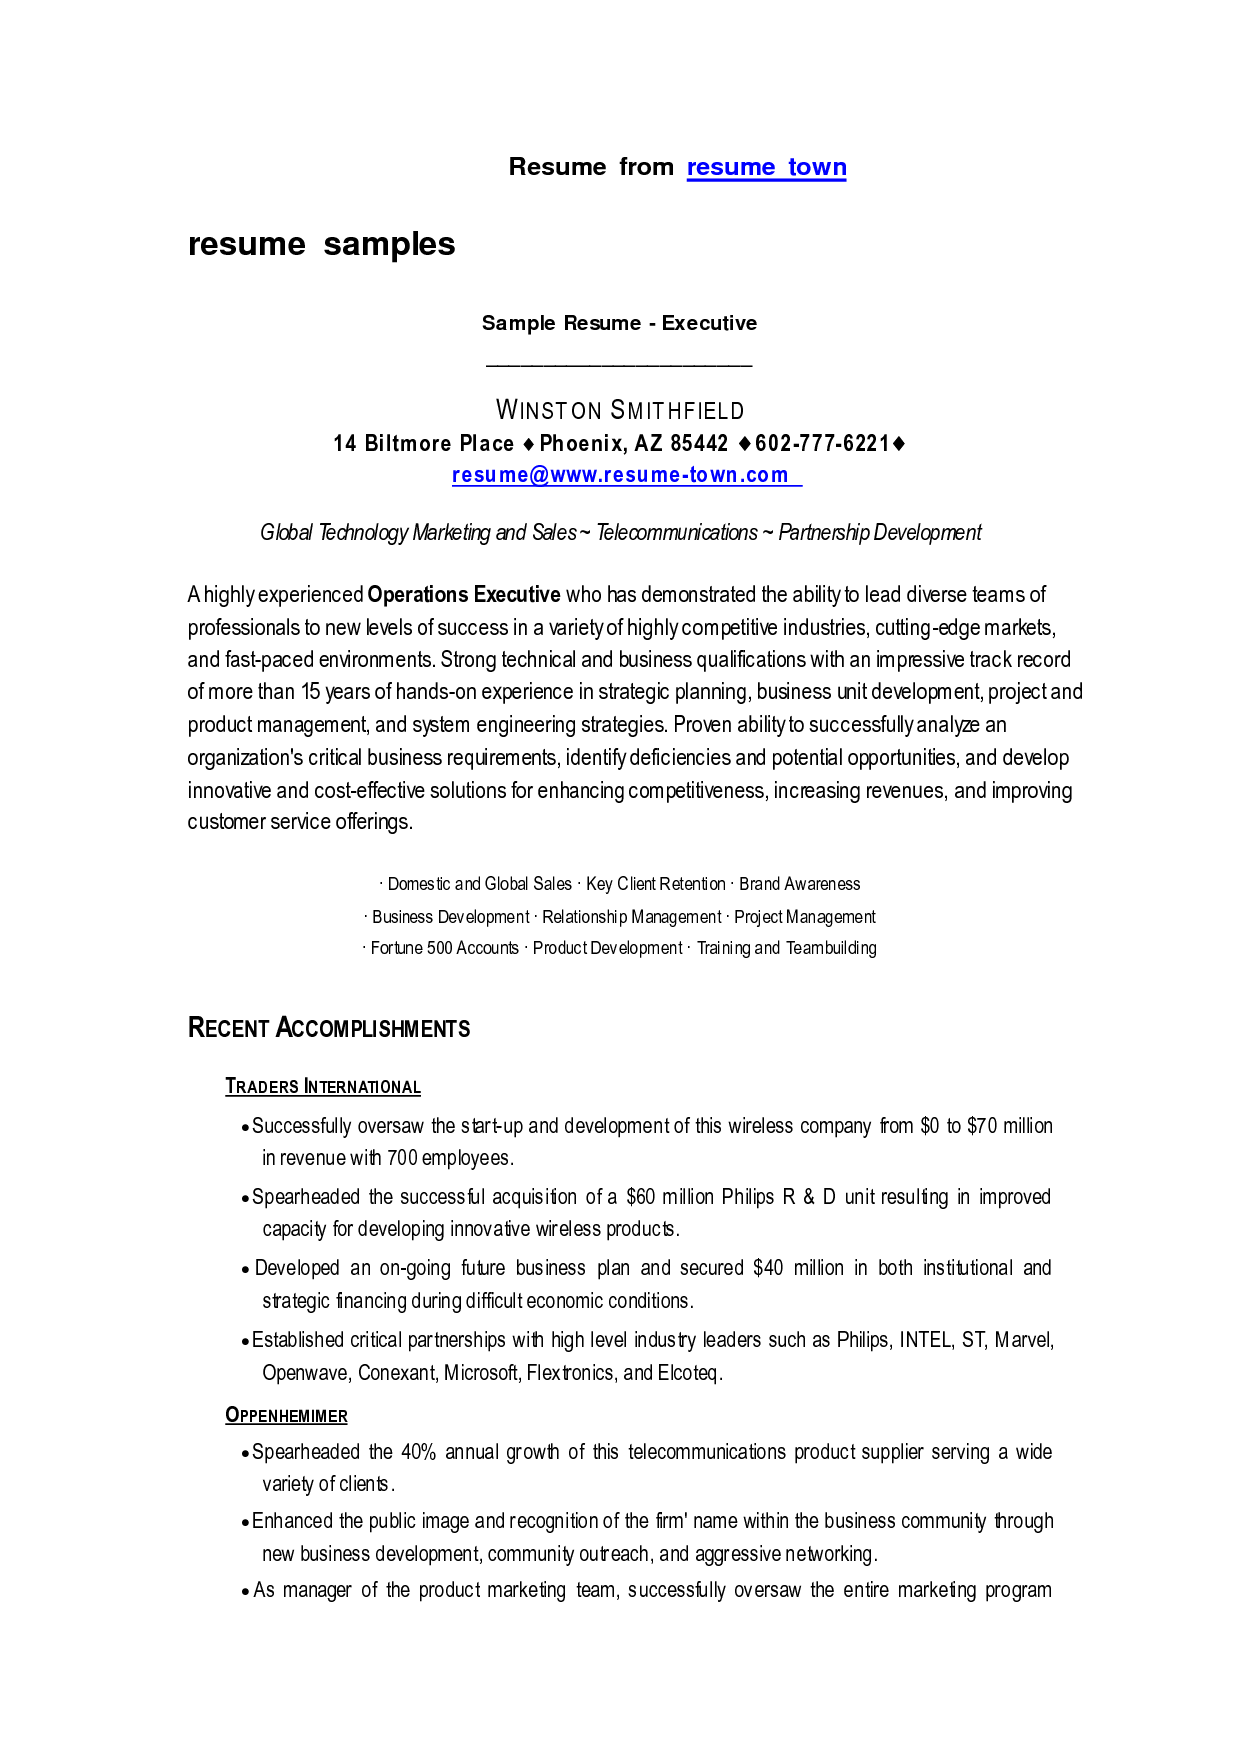 Free Downloadable Resume Templates Best Template HDResume Templates ...